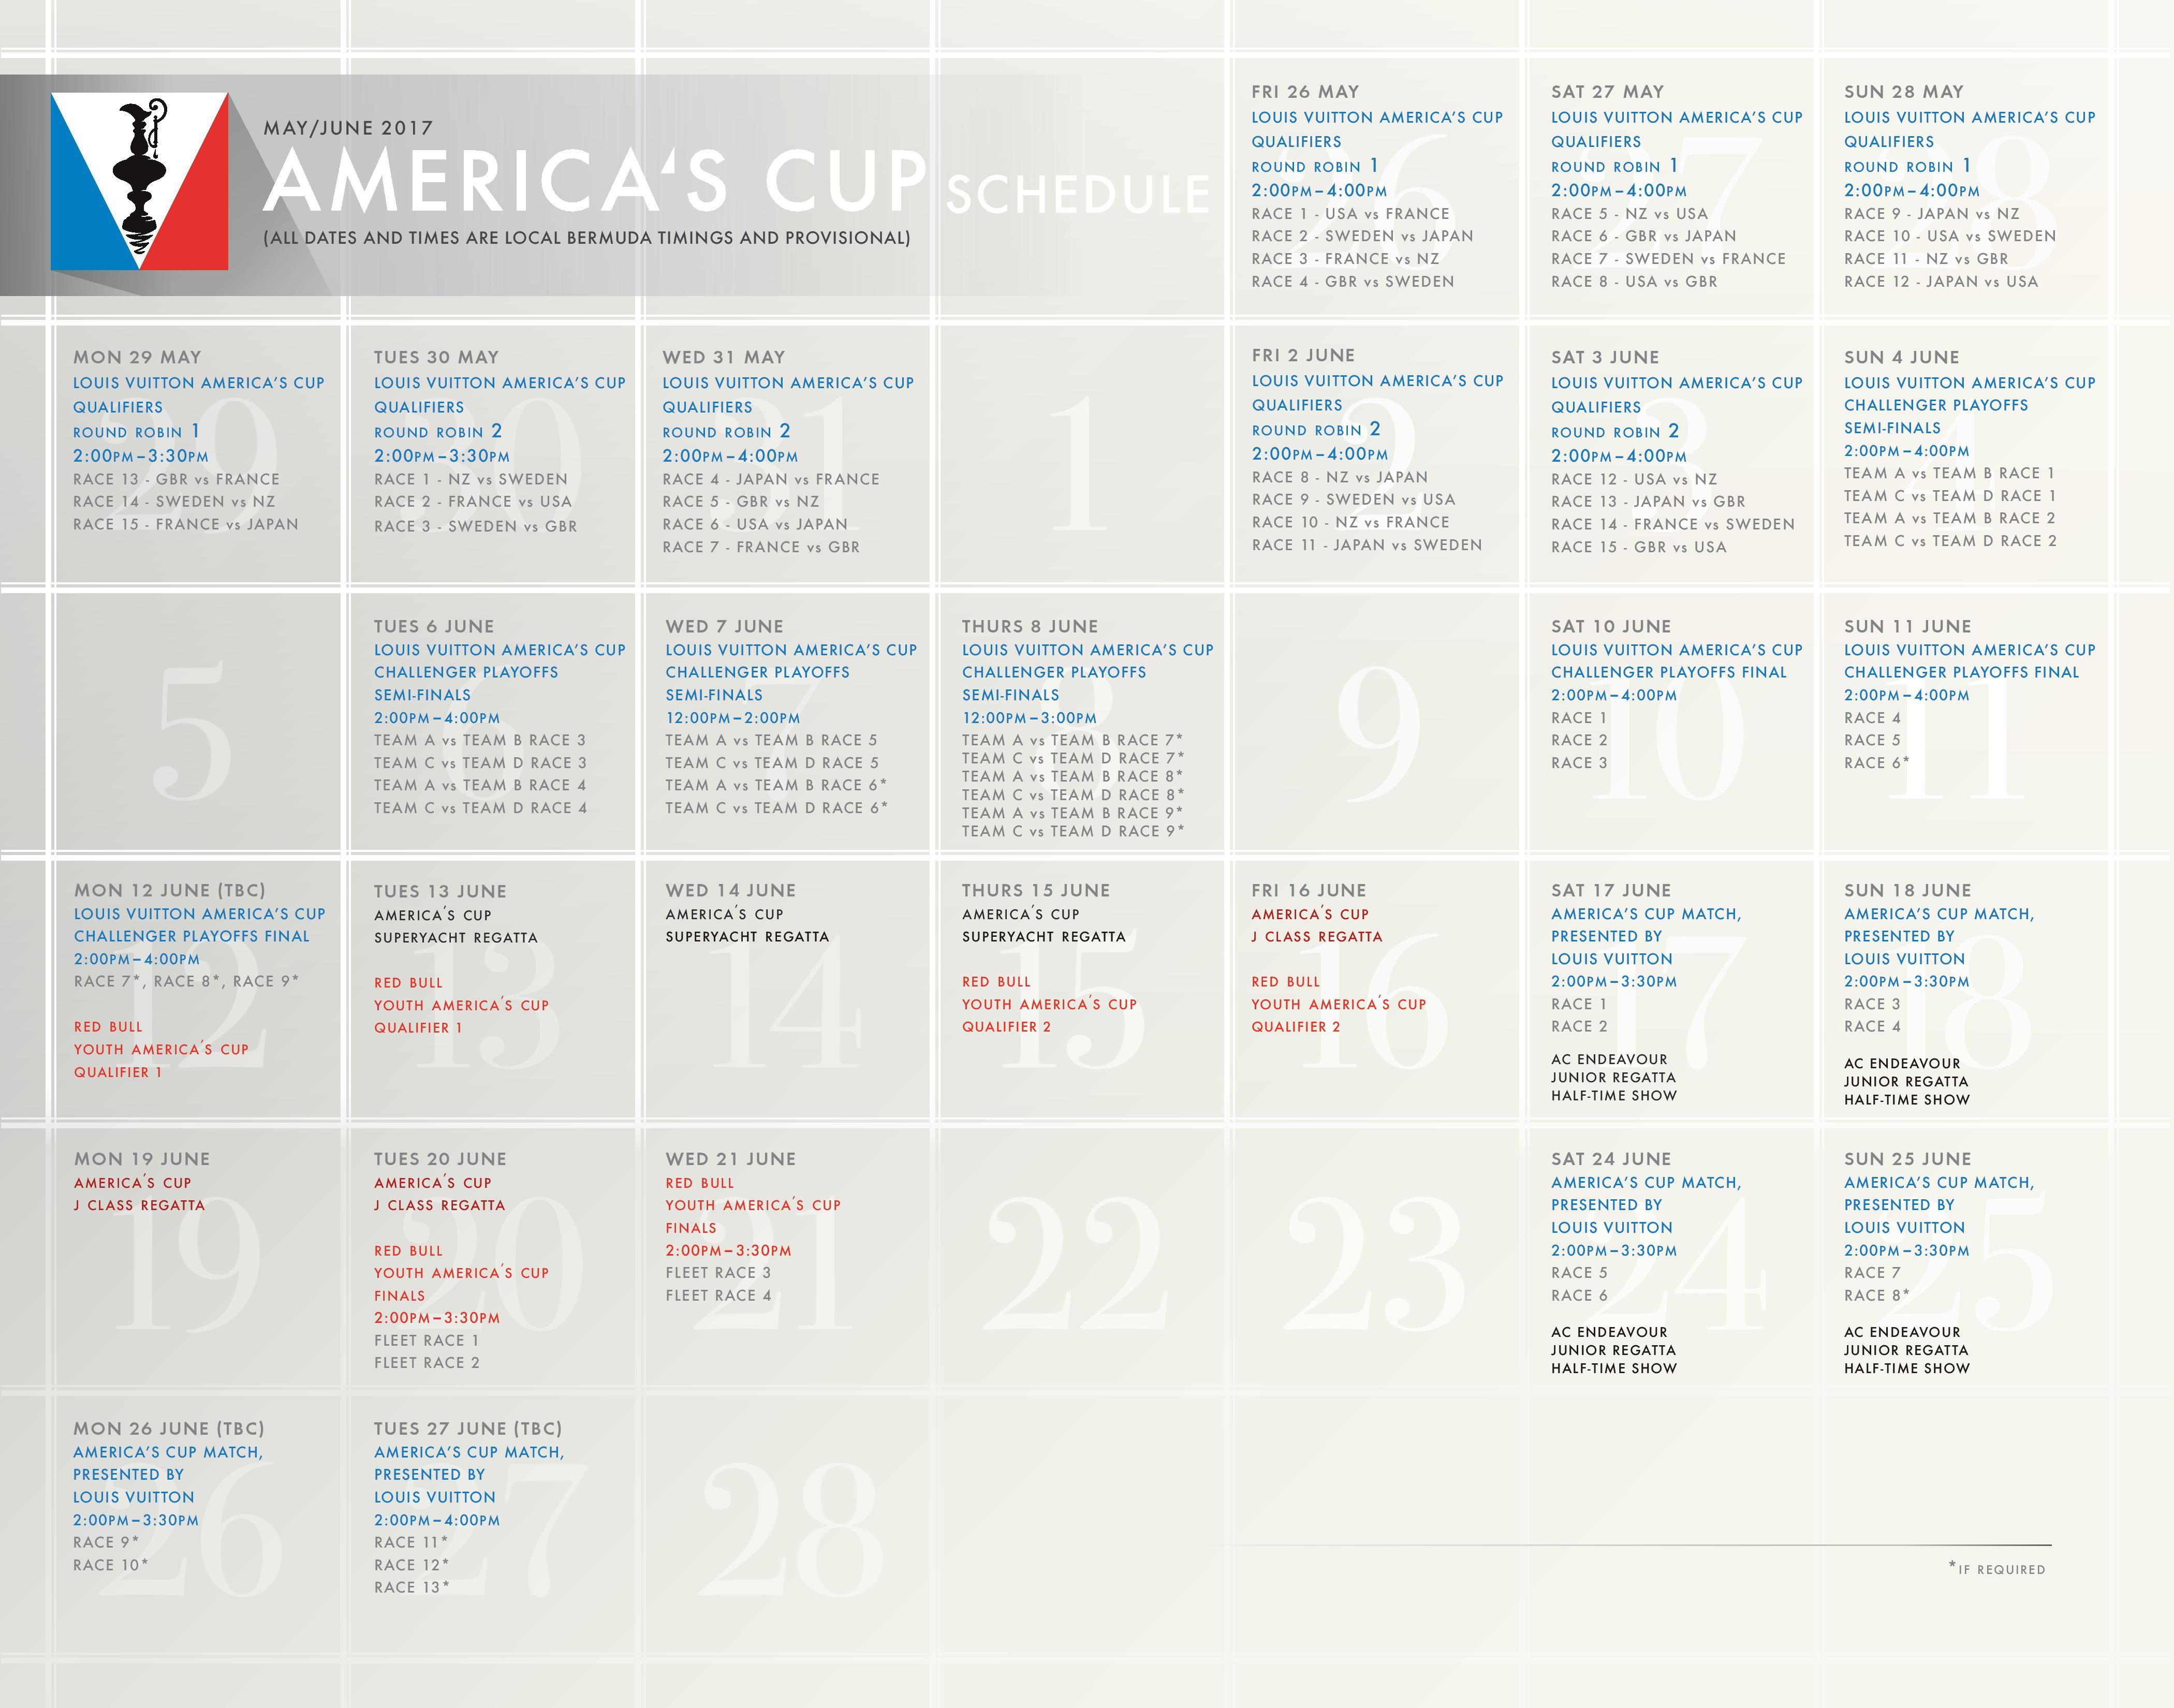 m2287 2017 louis vuitton america s cup schedule